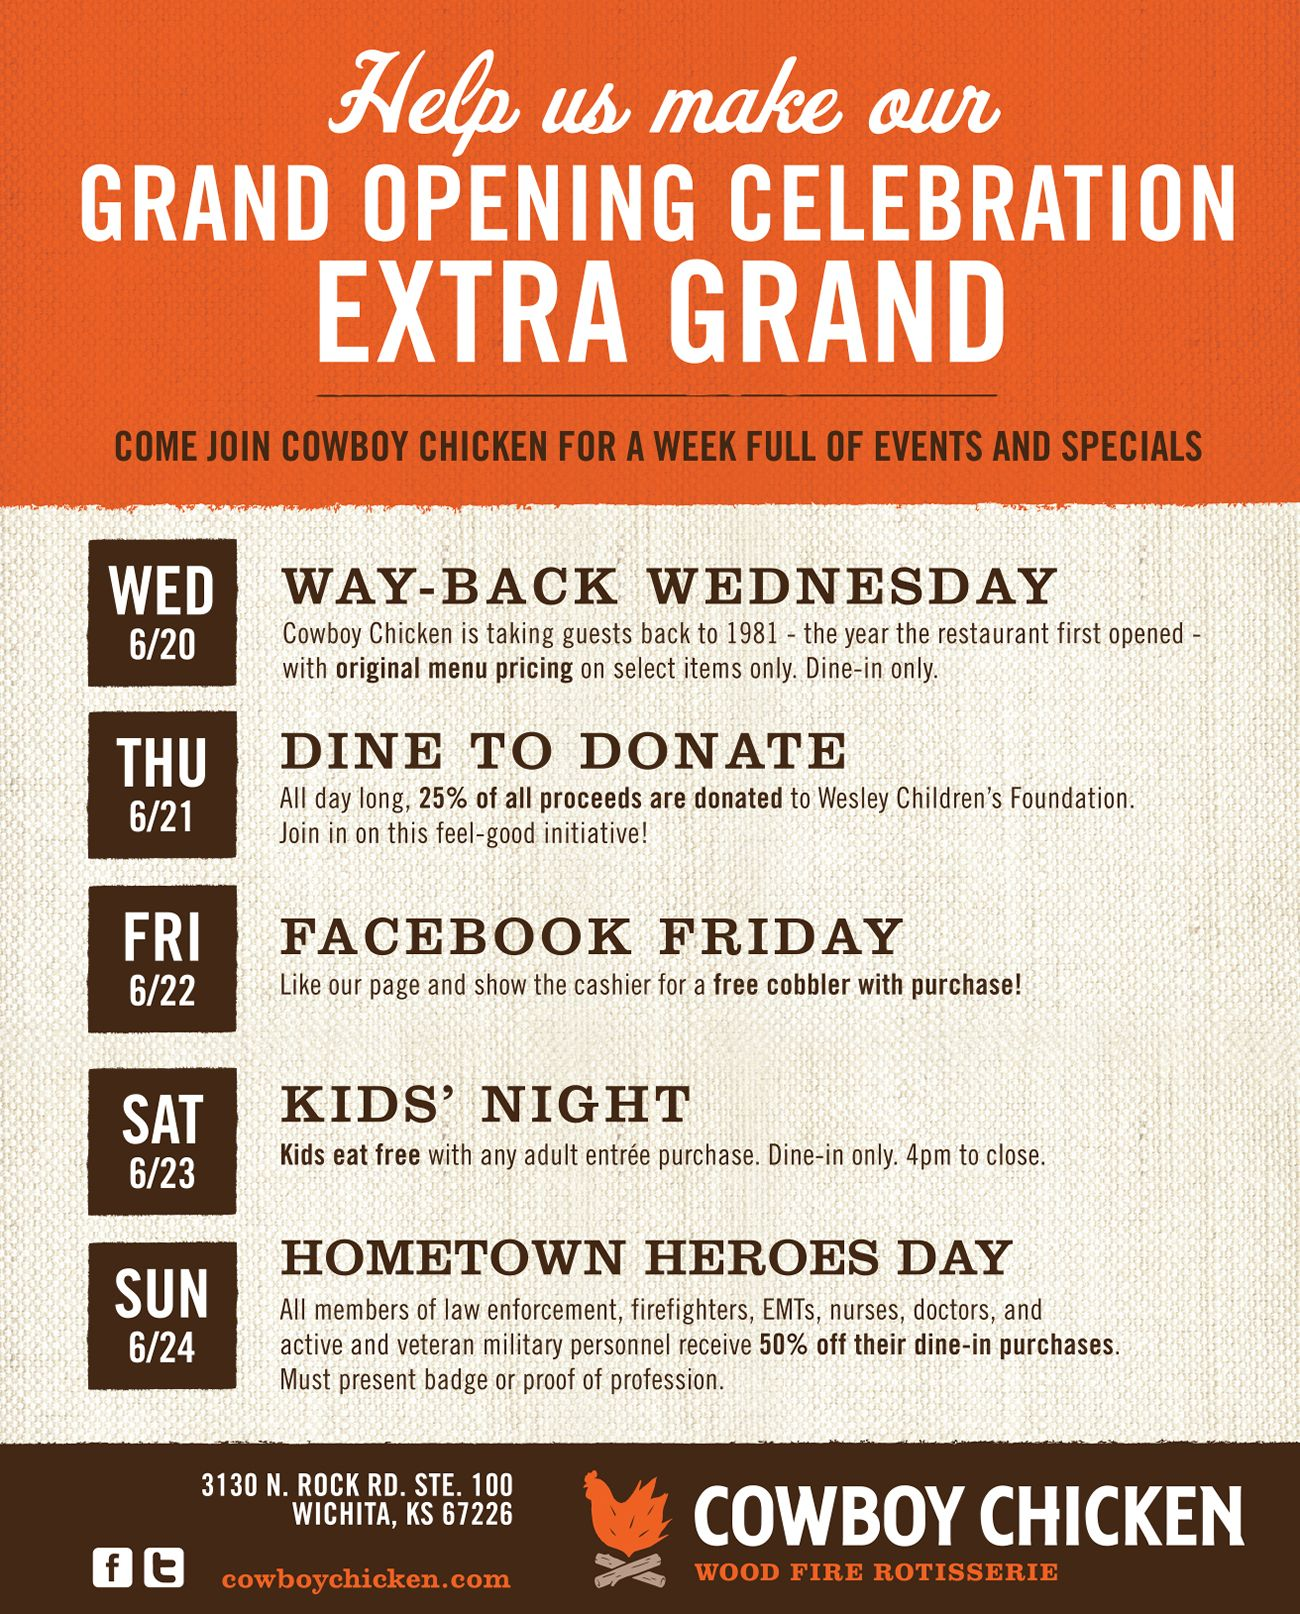 Cowboy Chicken Arrives in Wichita with Grand Opening Celebration June 20-24